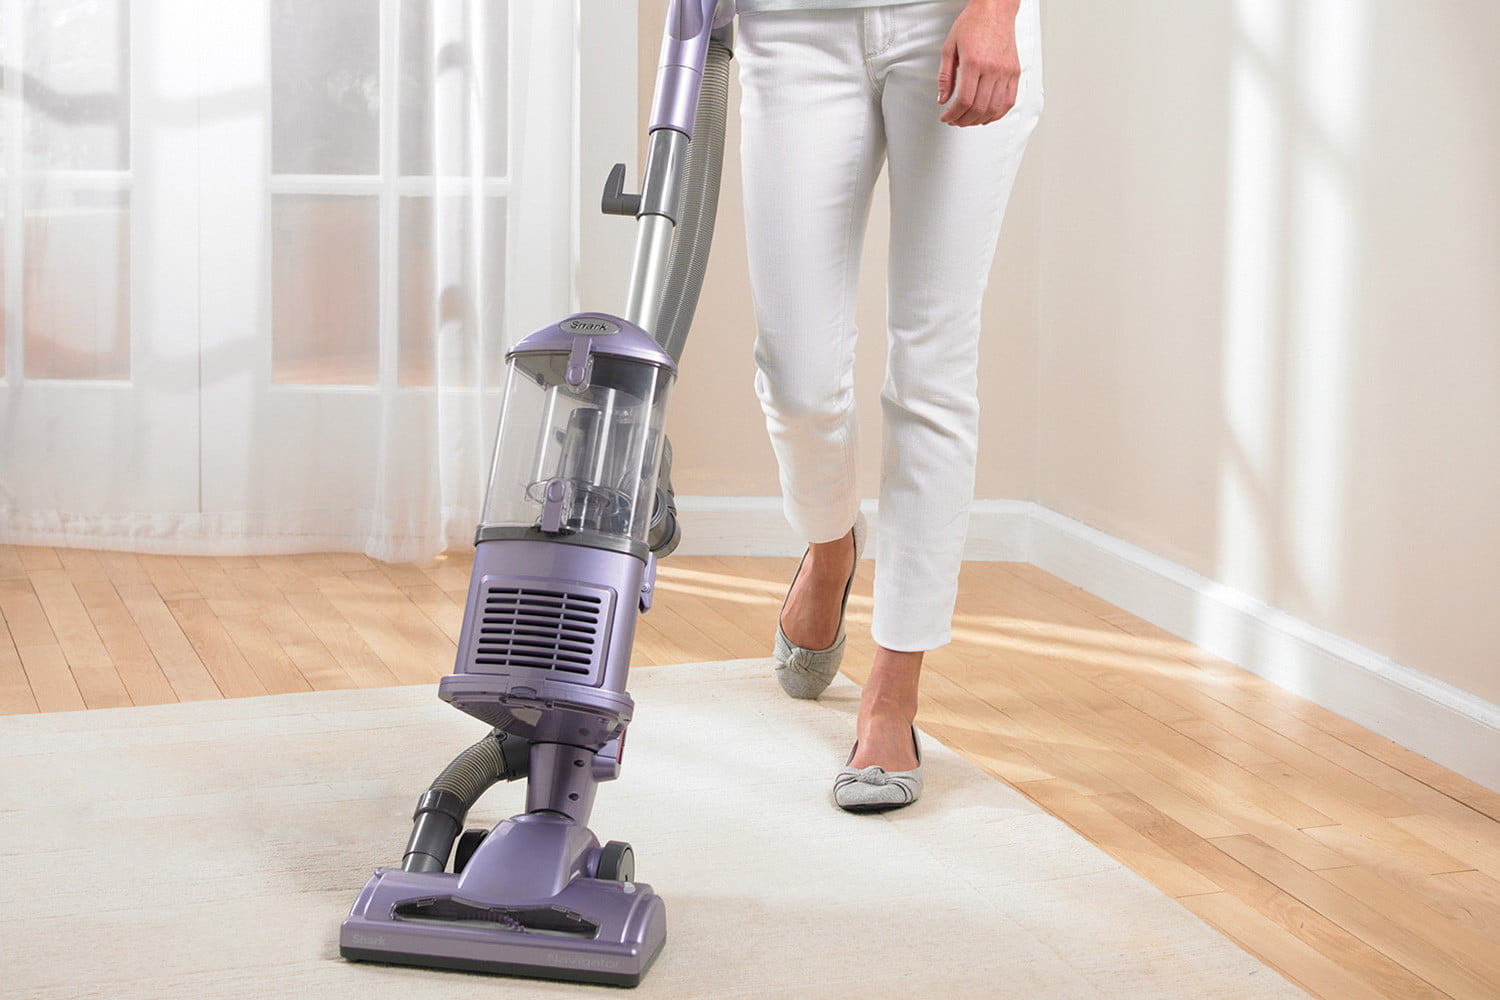 Getting Down To The Nitty Gritty The Best Vacuums You Can Buy News 9